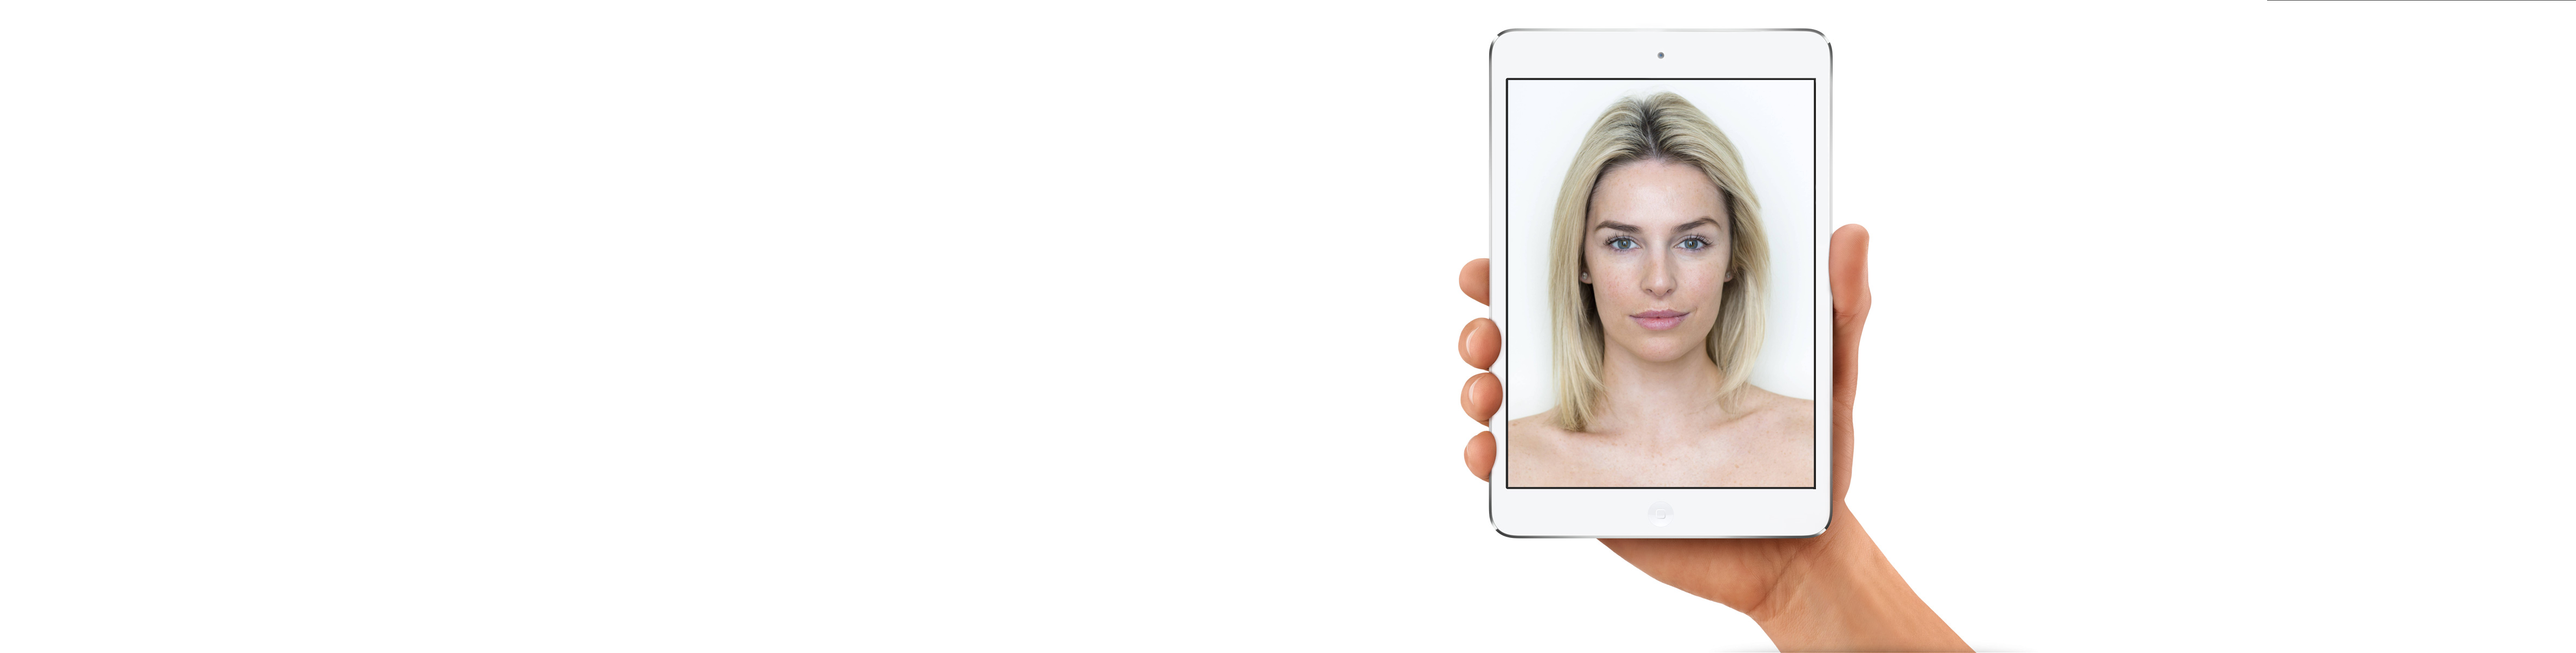 ipad-long-blonde